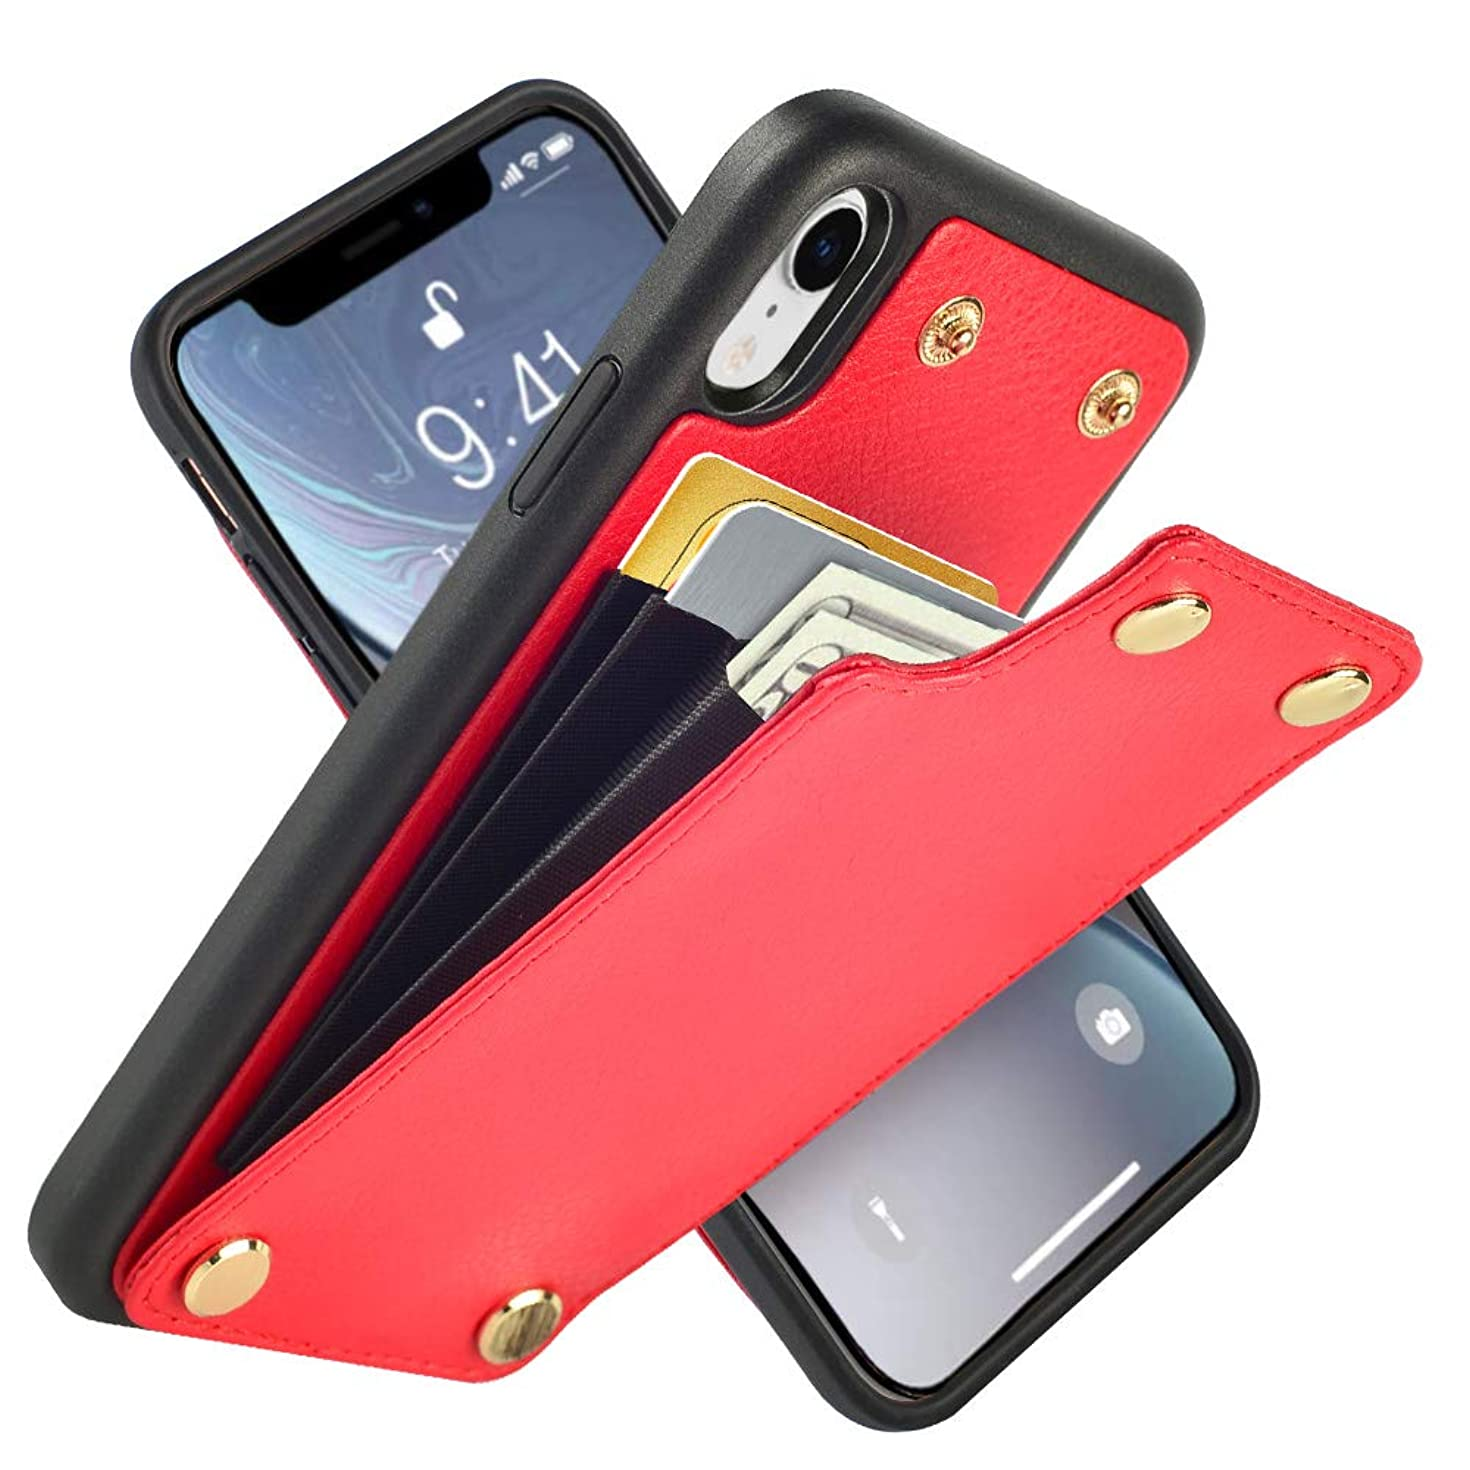 LAMEEKU Wallet Case for iPhone XR, Leather Credit Card Holder Case with Card Slot Money Pocket, Shockproof Protective Bumper Phone Cover Compatible with iPhone XR 6.1